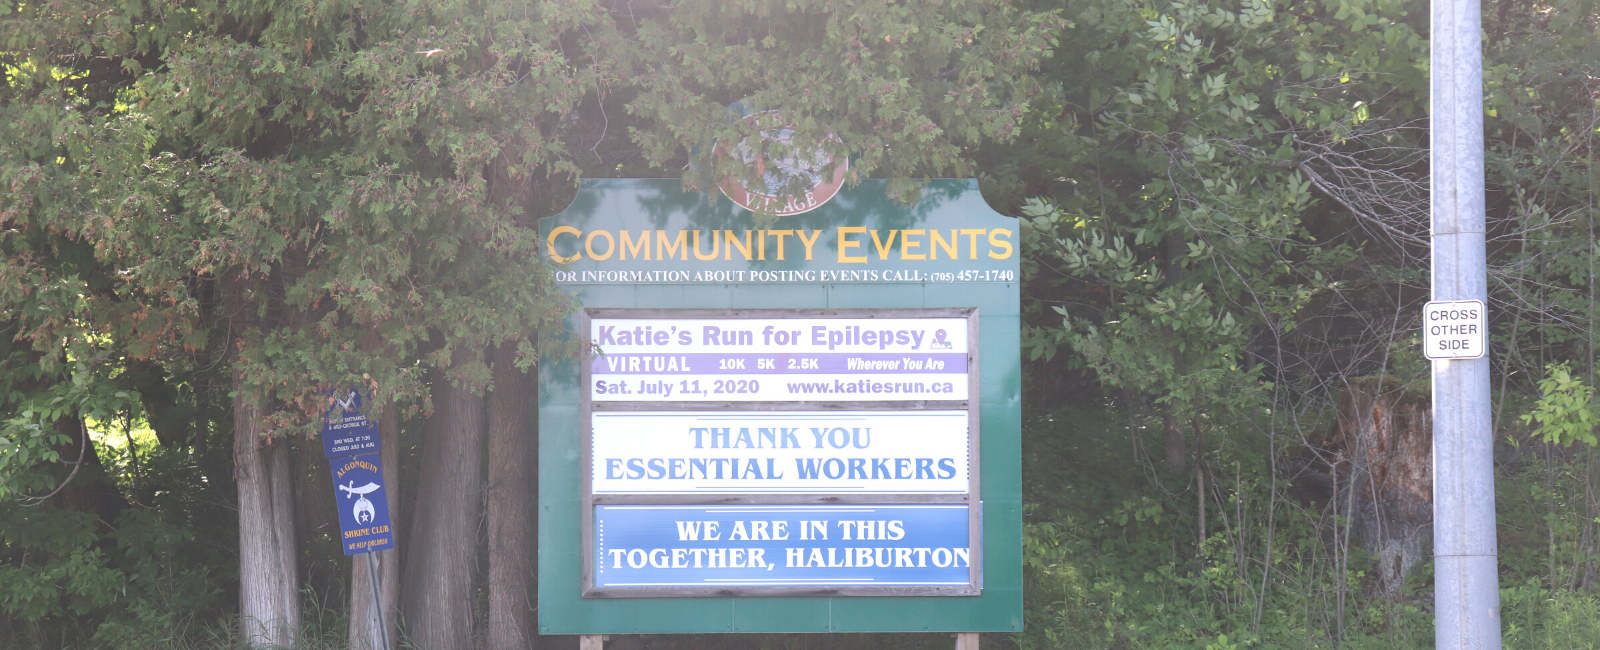 Community Events Board